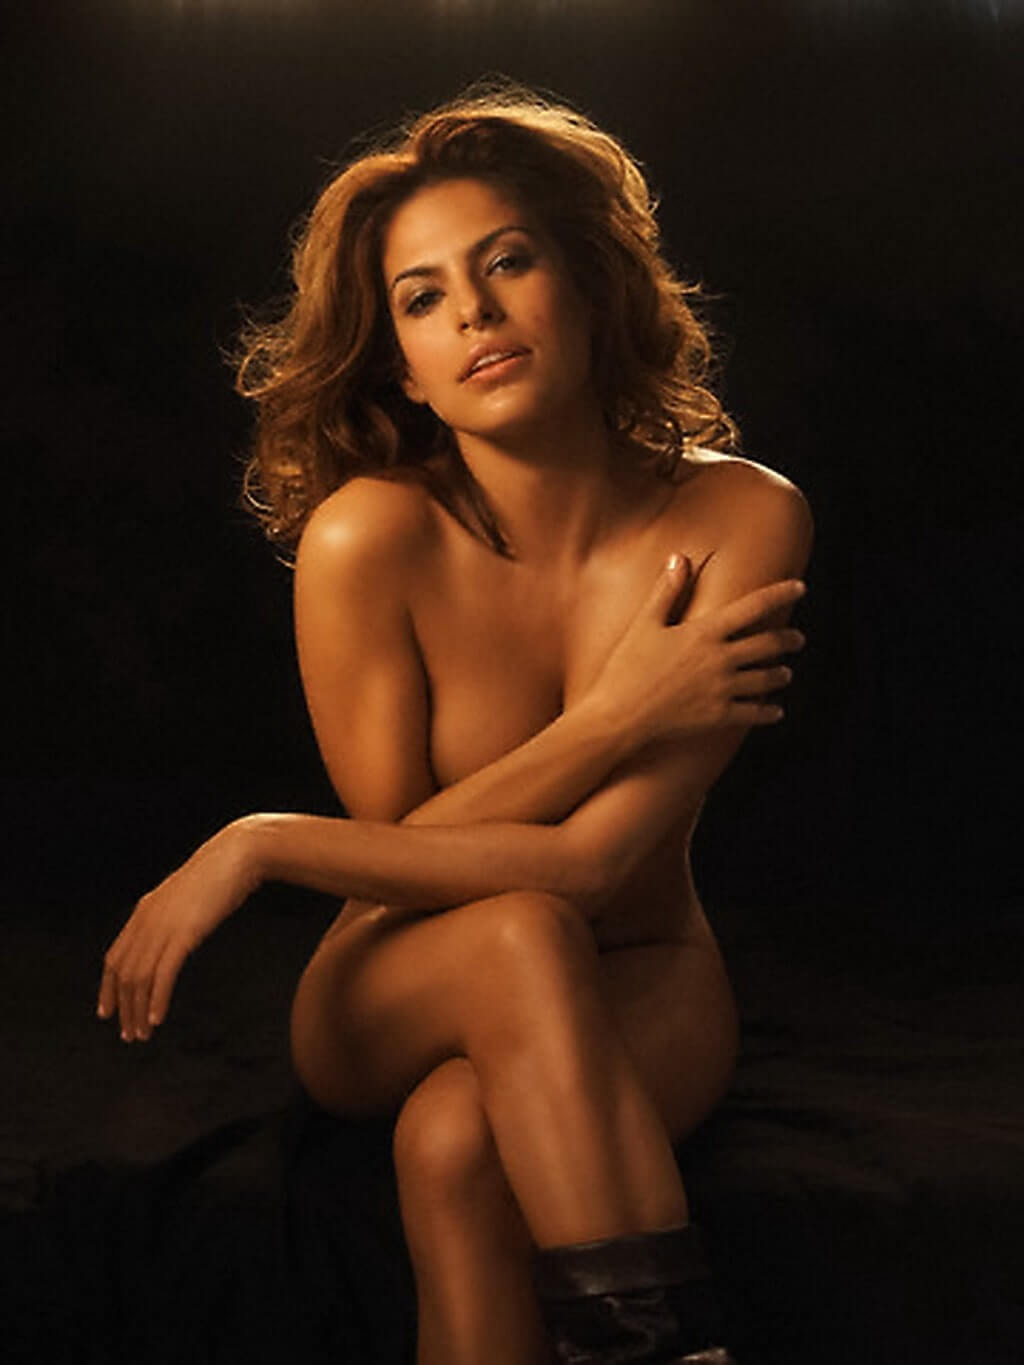 eva mendes hot topless pic